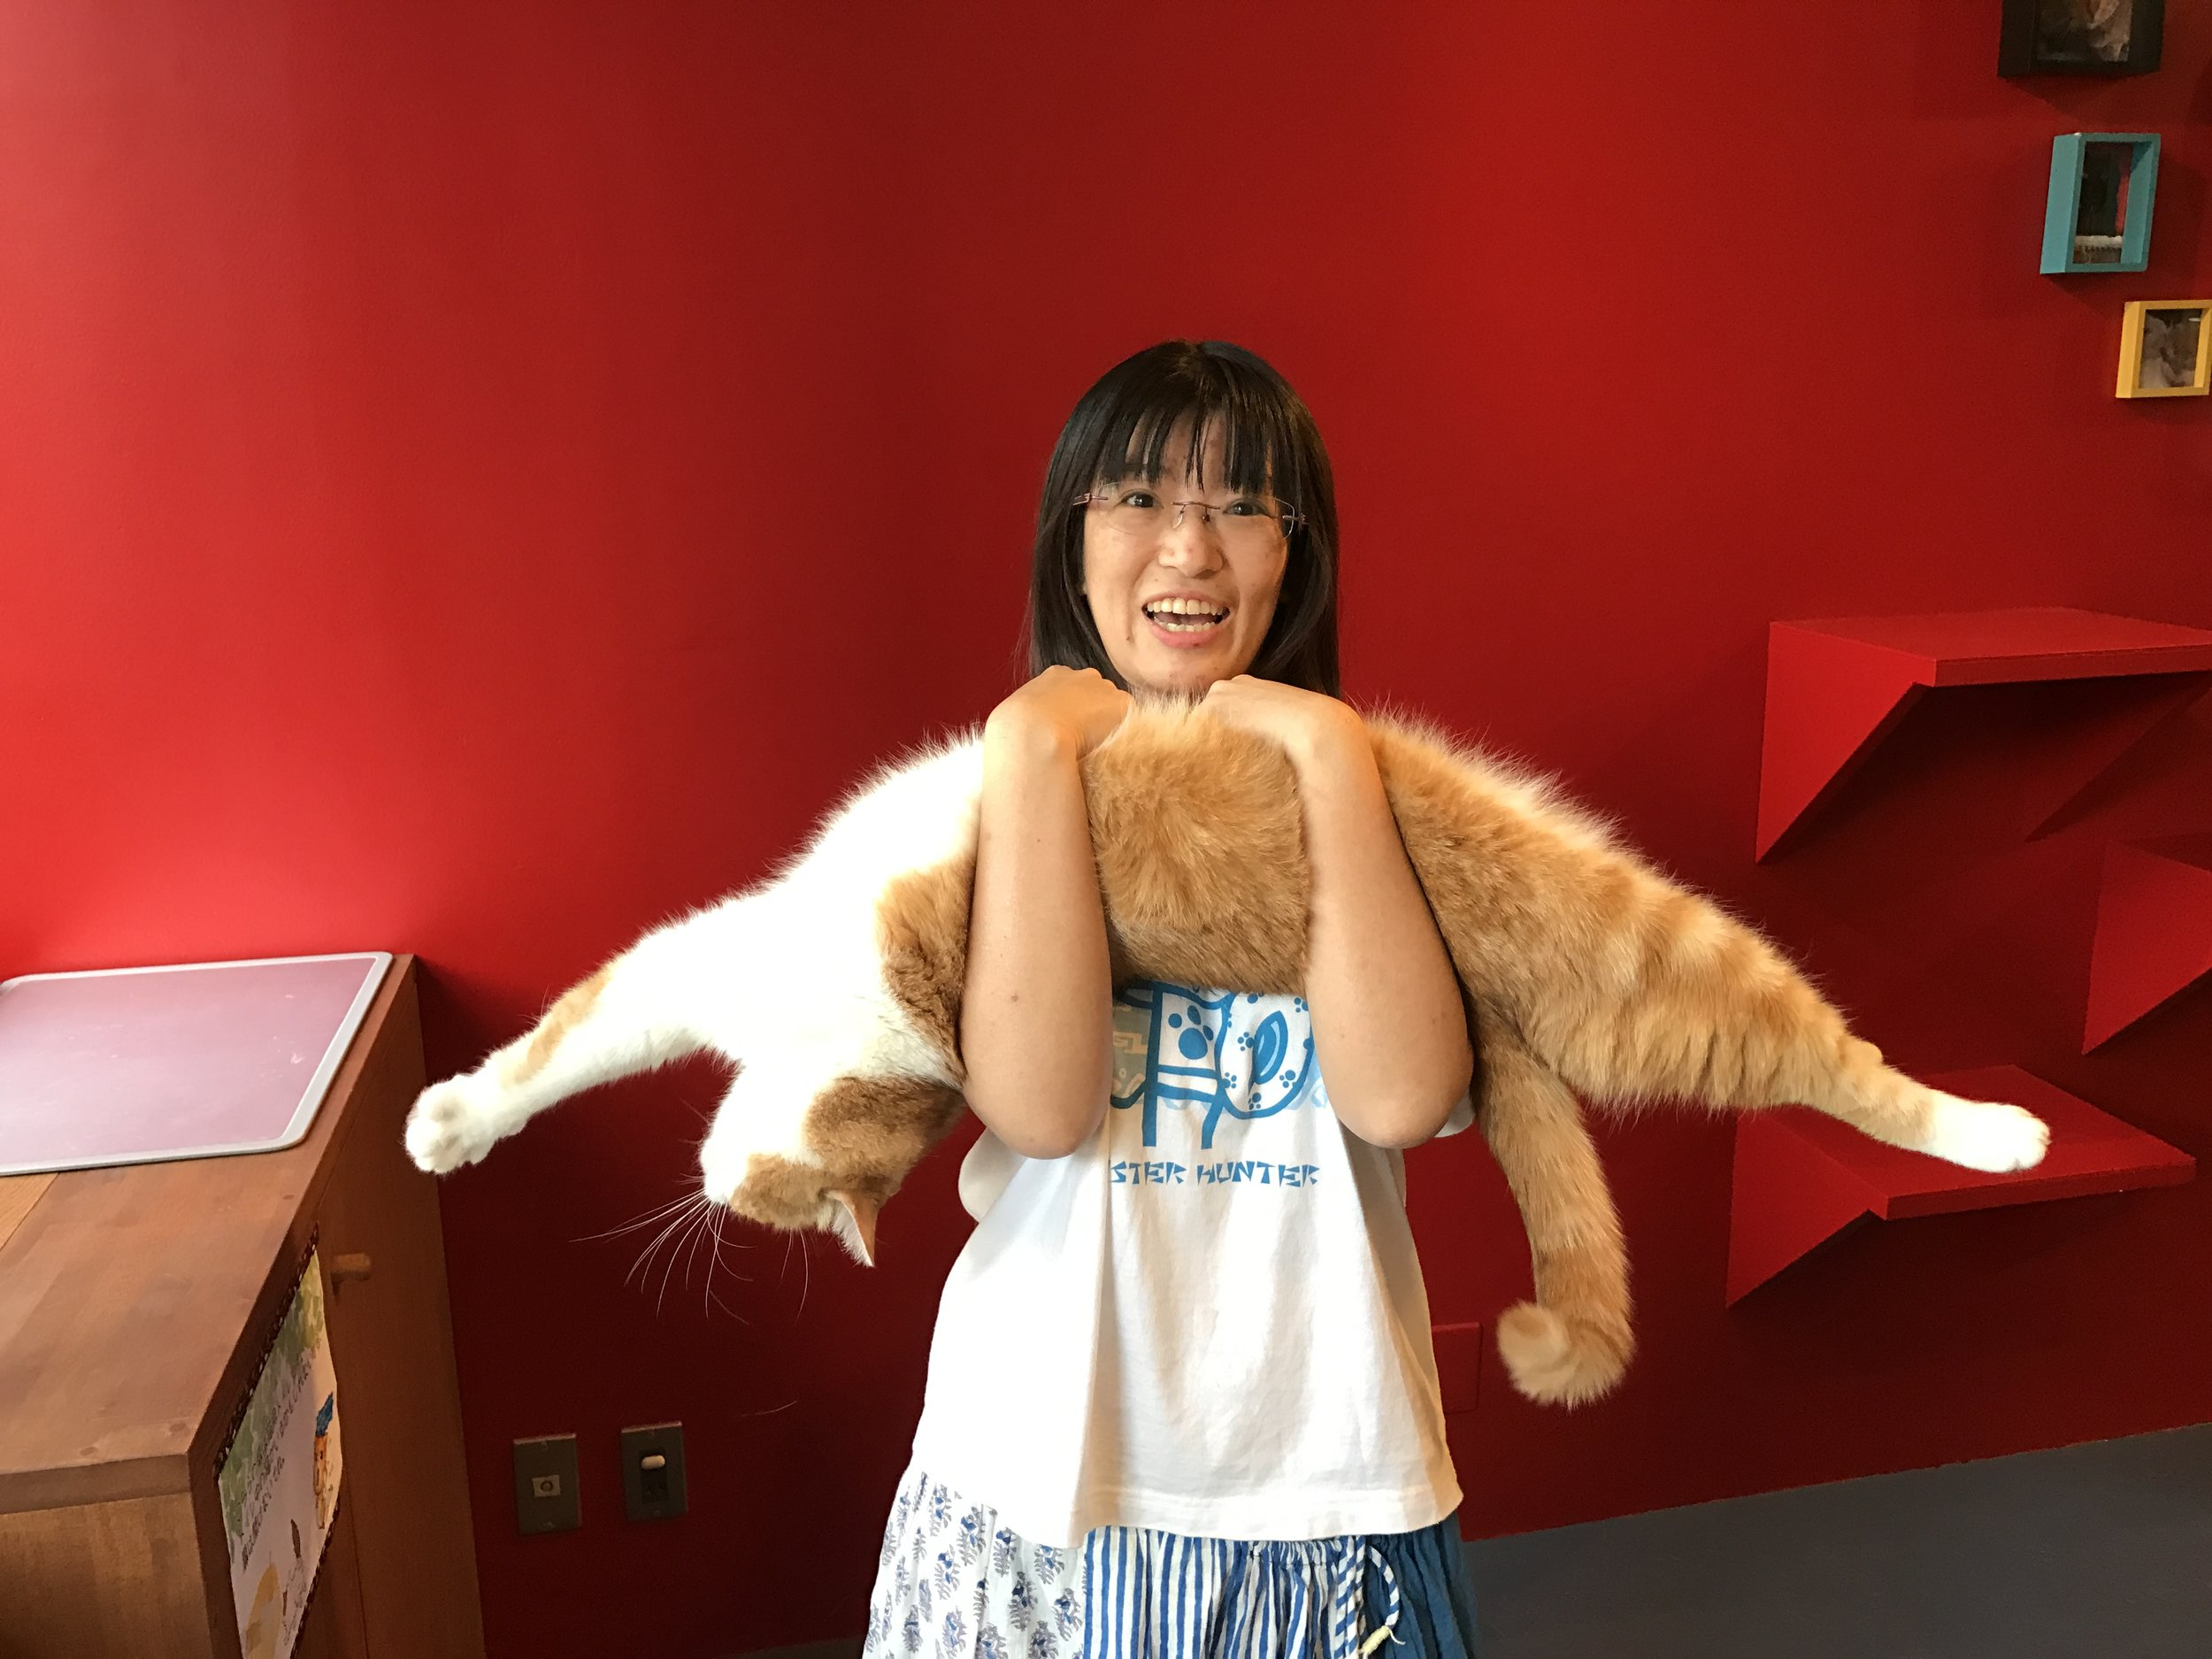 The friendly owner of Cat's Gallery in Nagoya, Japan shows off one flexible feline.